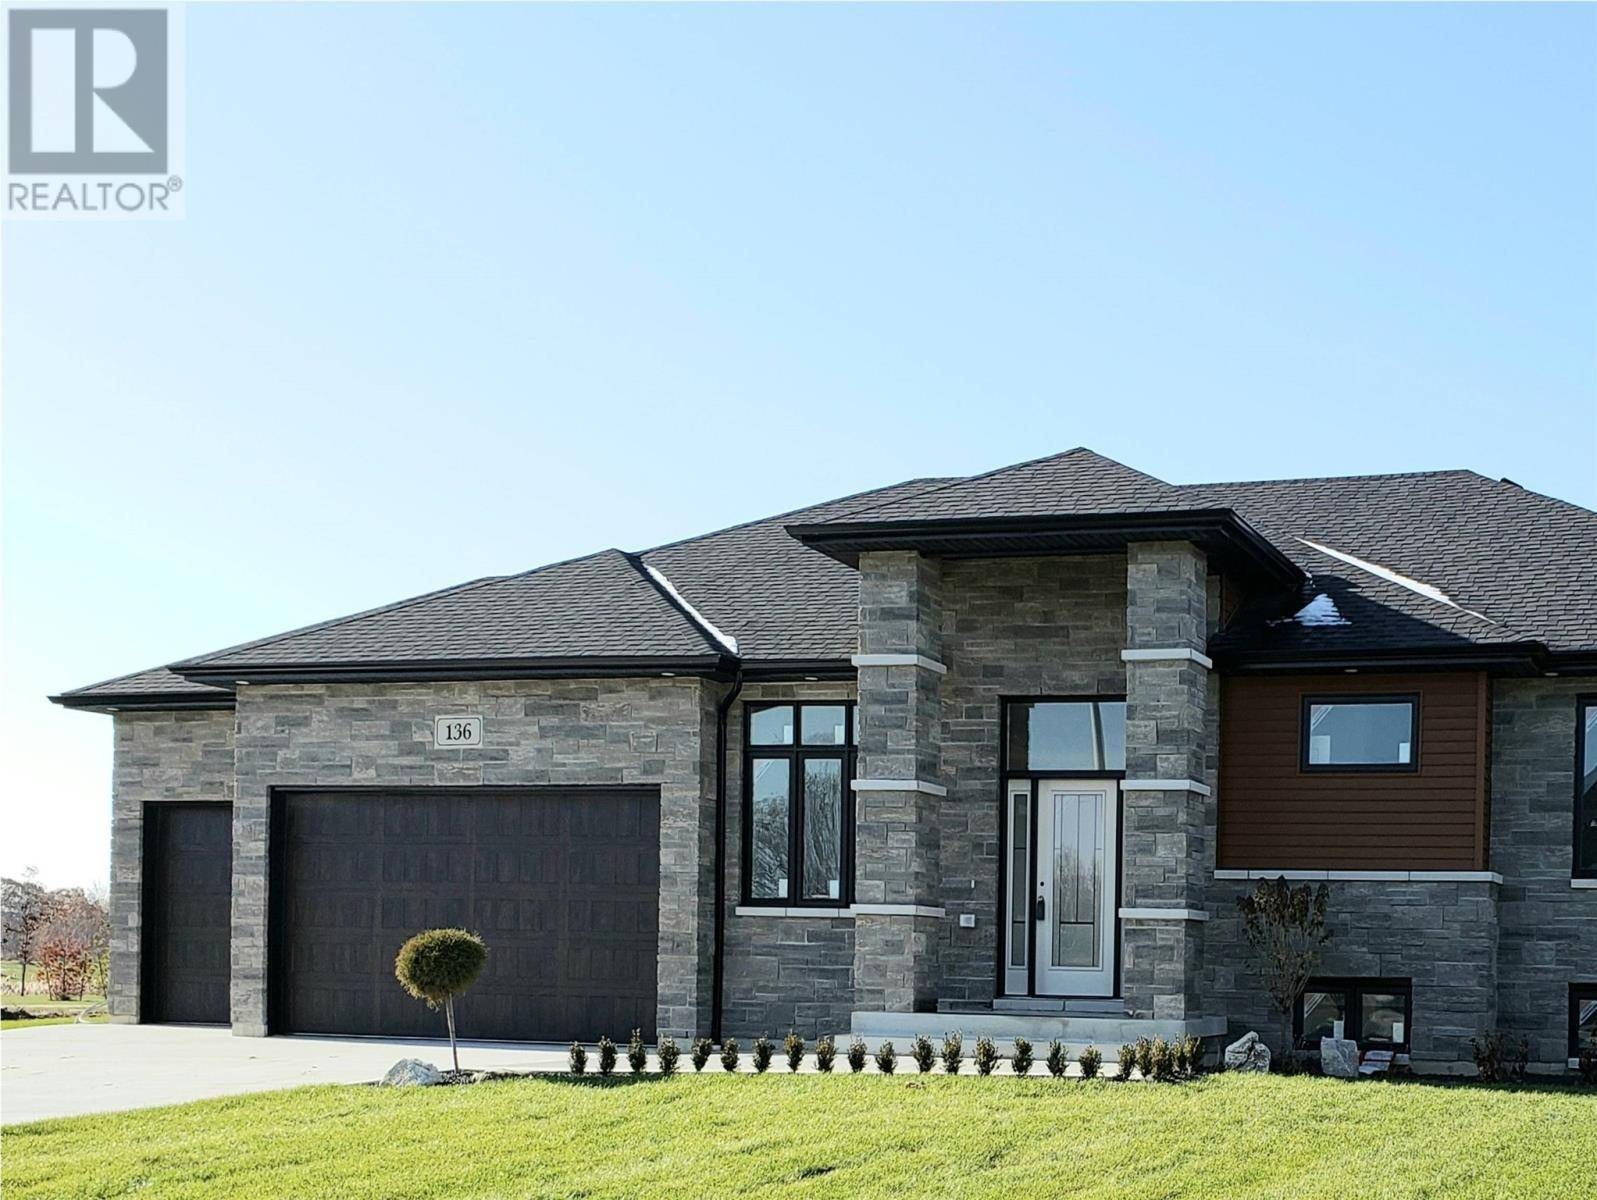 House for sale at 136 Golfview Dr Kingsville Ontario - MLS: 19027940